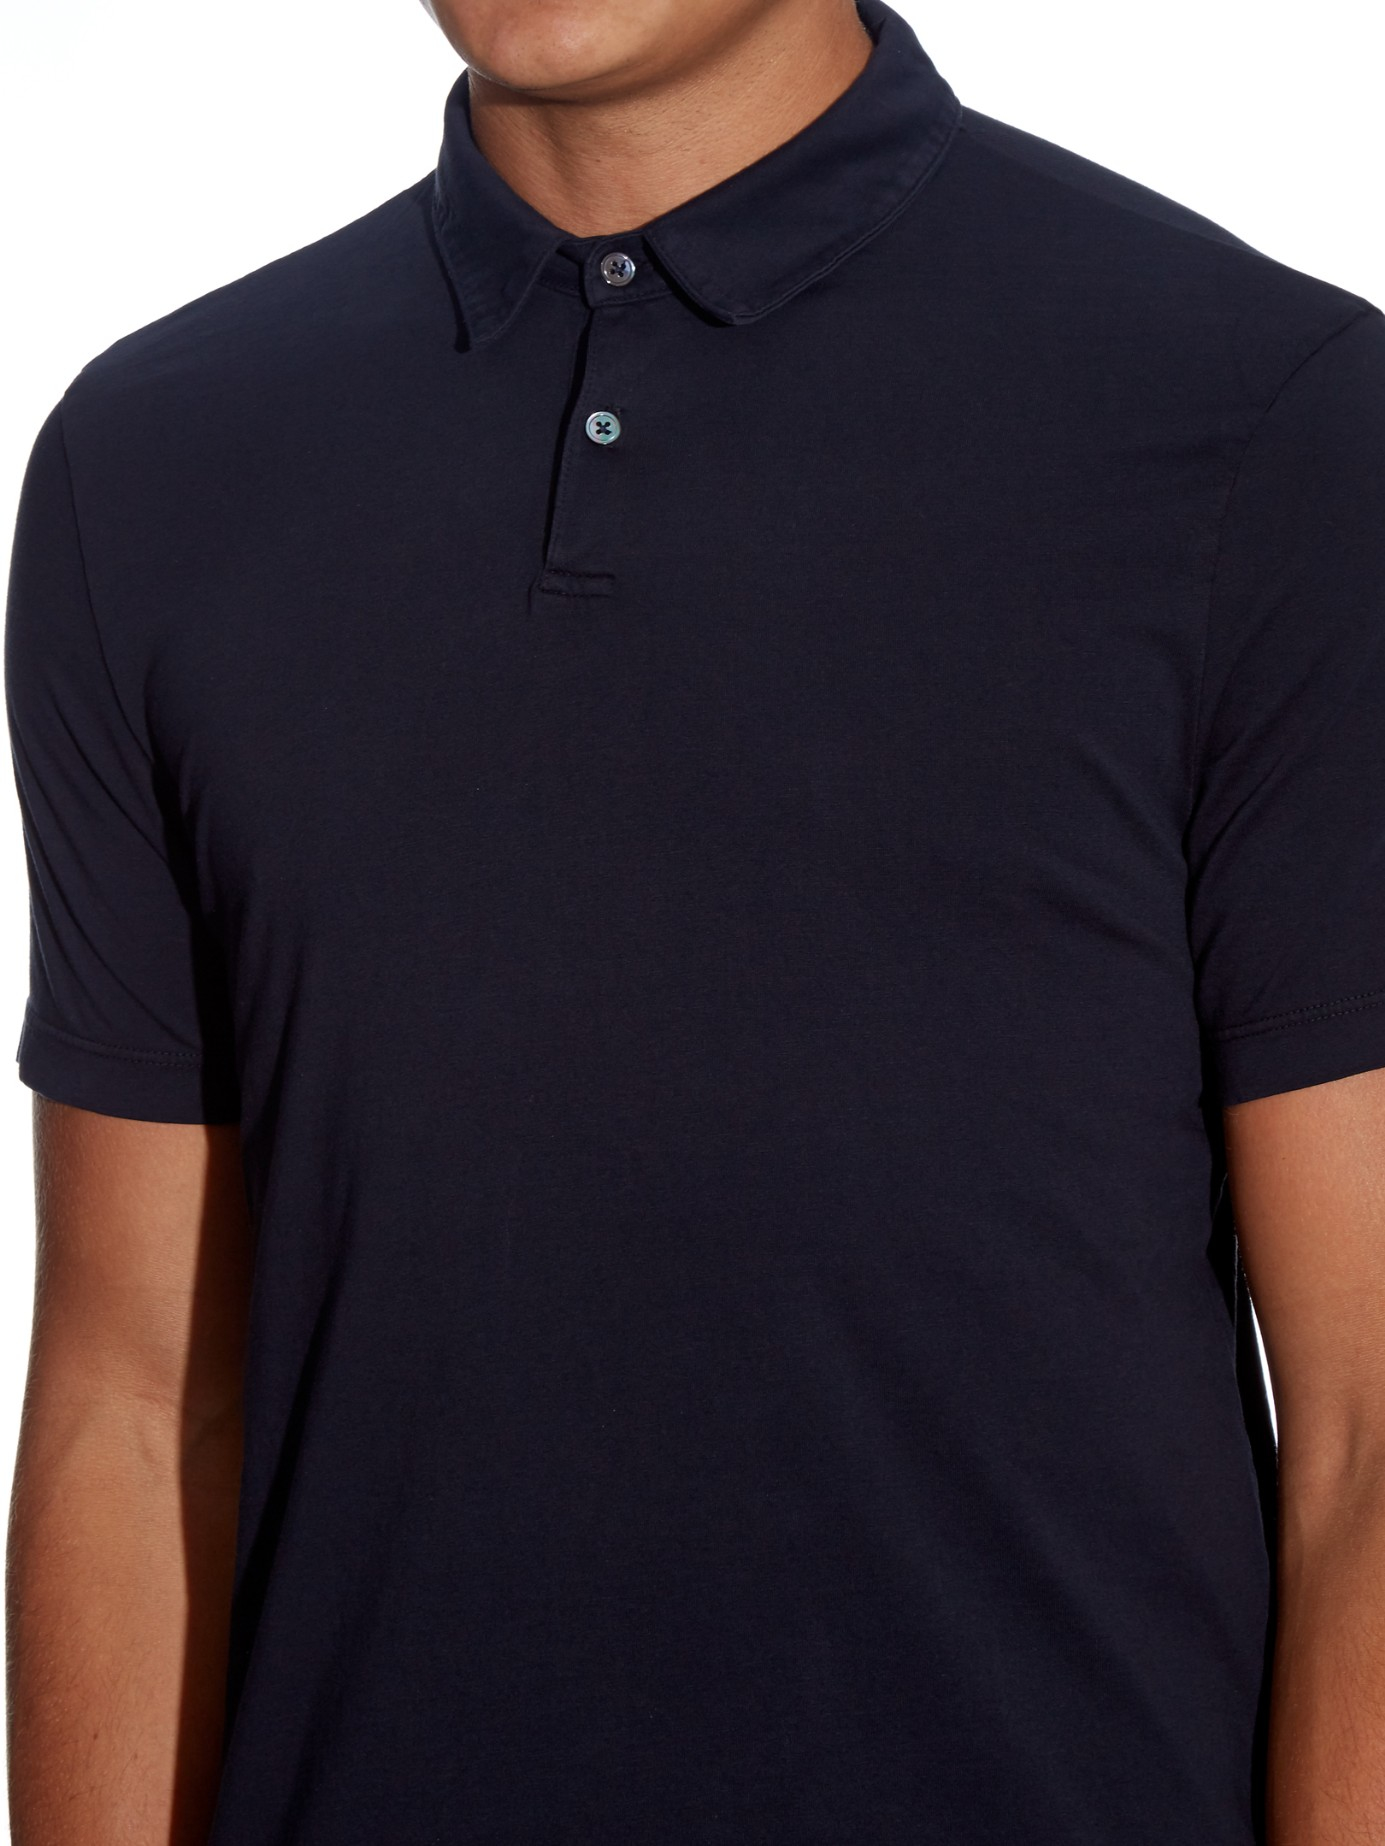 james perse supima cotton polo shirt in blue for men lyst